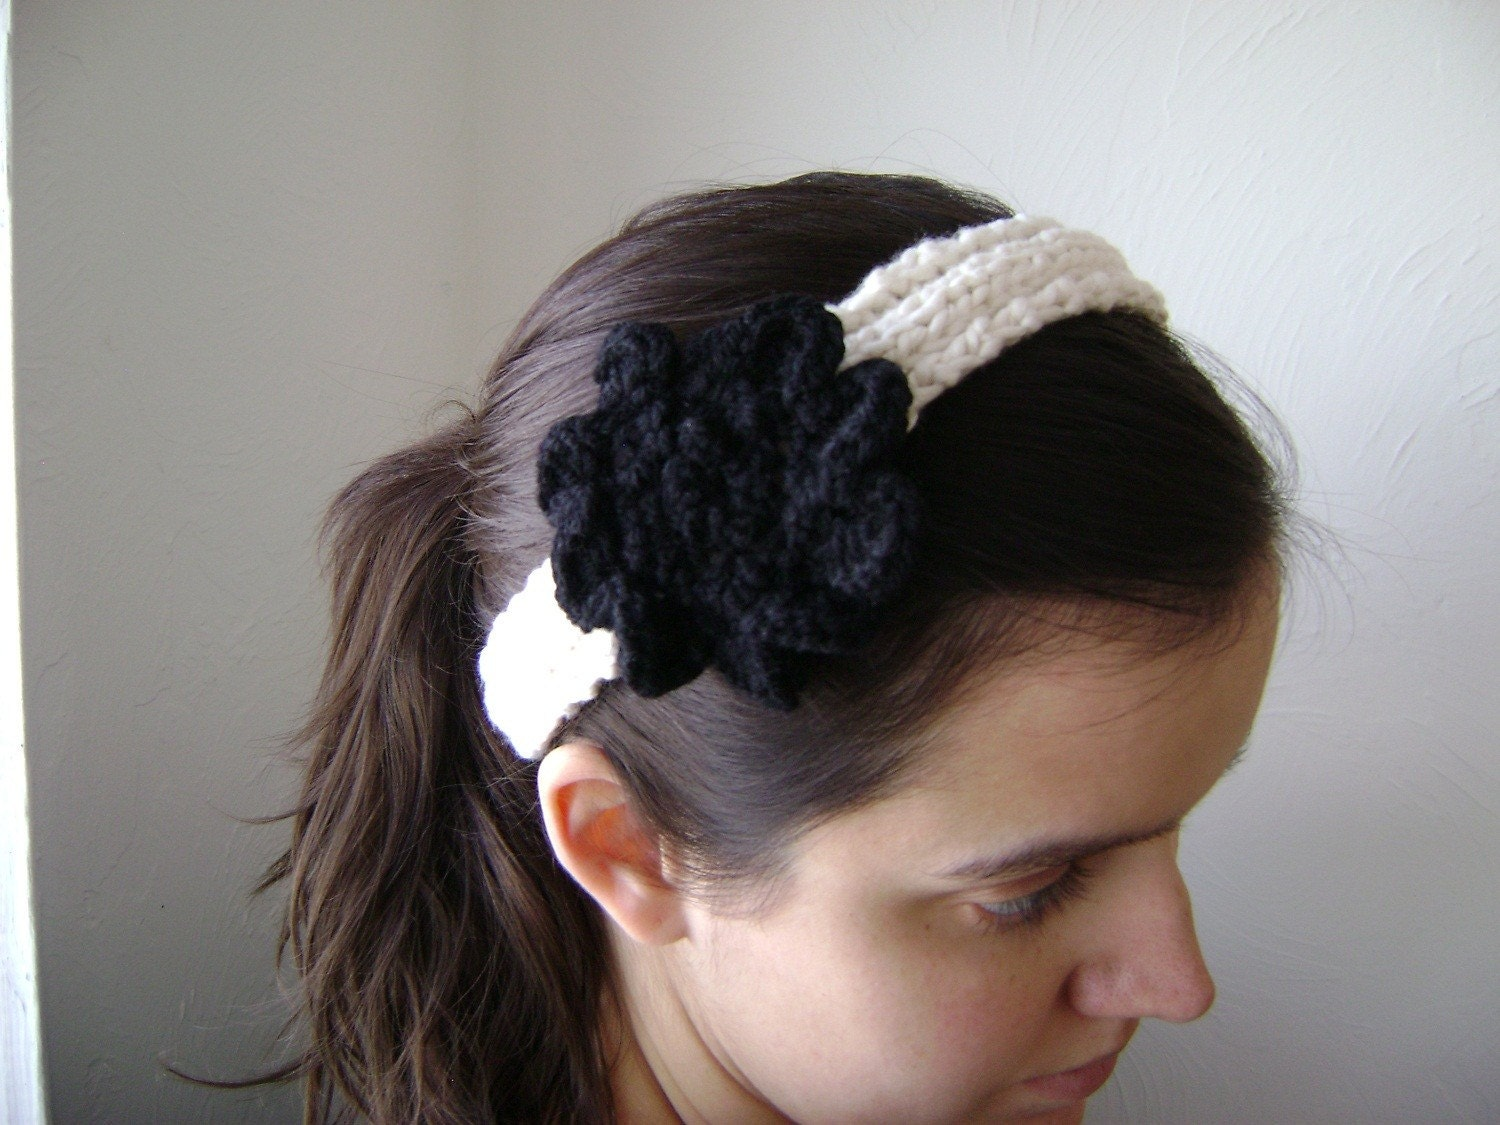 Ribbed Headband Knitting Pattern : Knit Ribbed Headband with Flower Pattern PDF by MelodysMakings